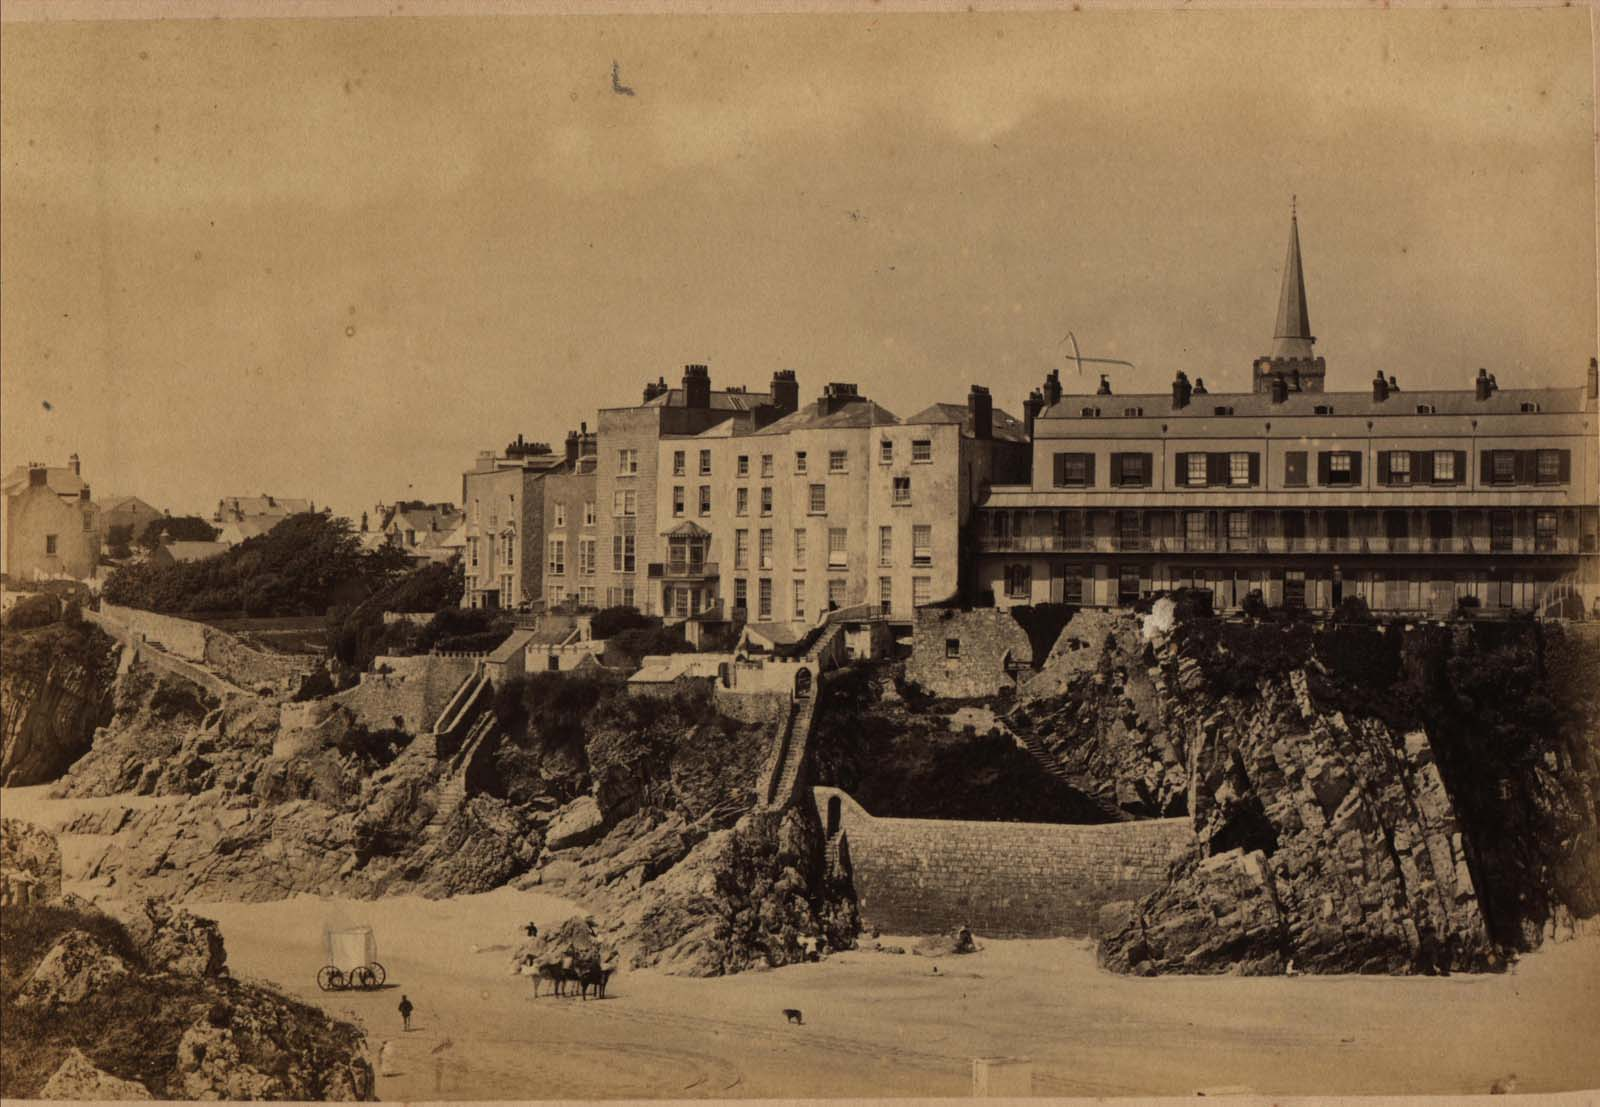 black and white photo of large houses along an esplanade above a clifftop seen from a beach